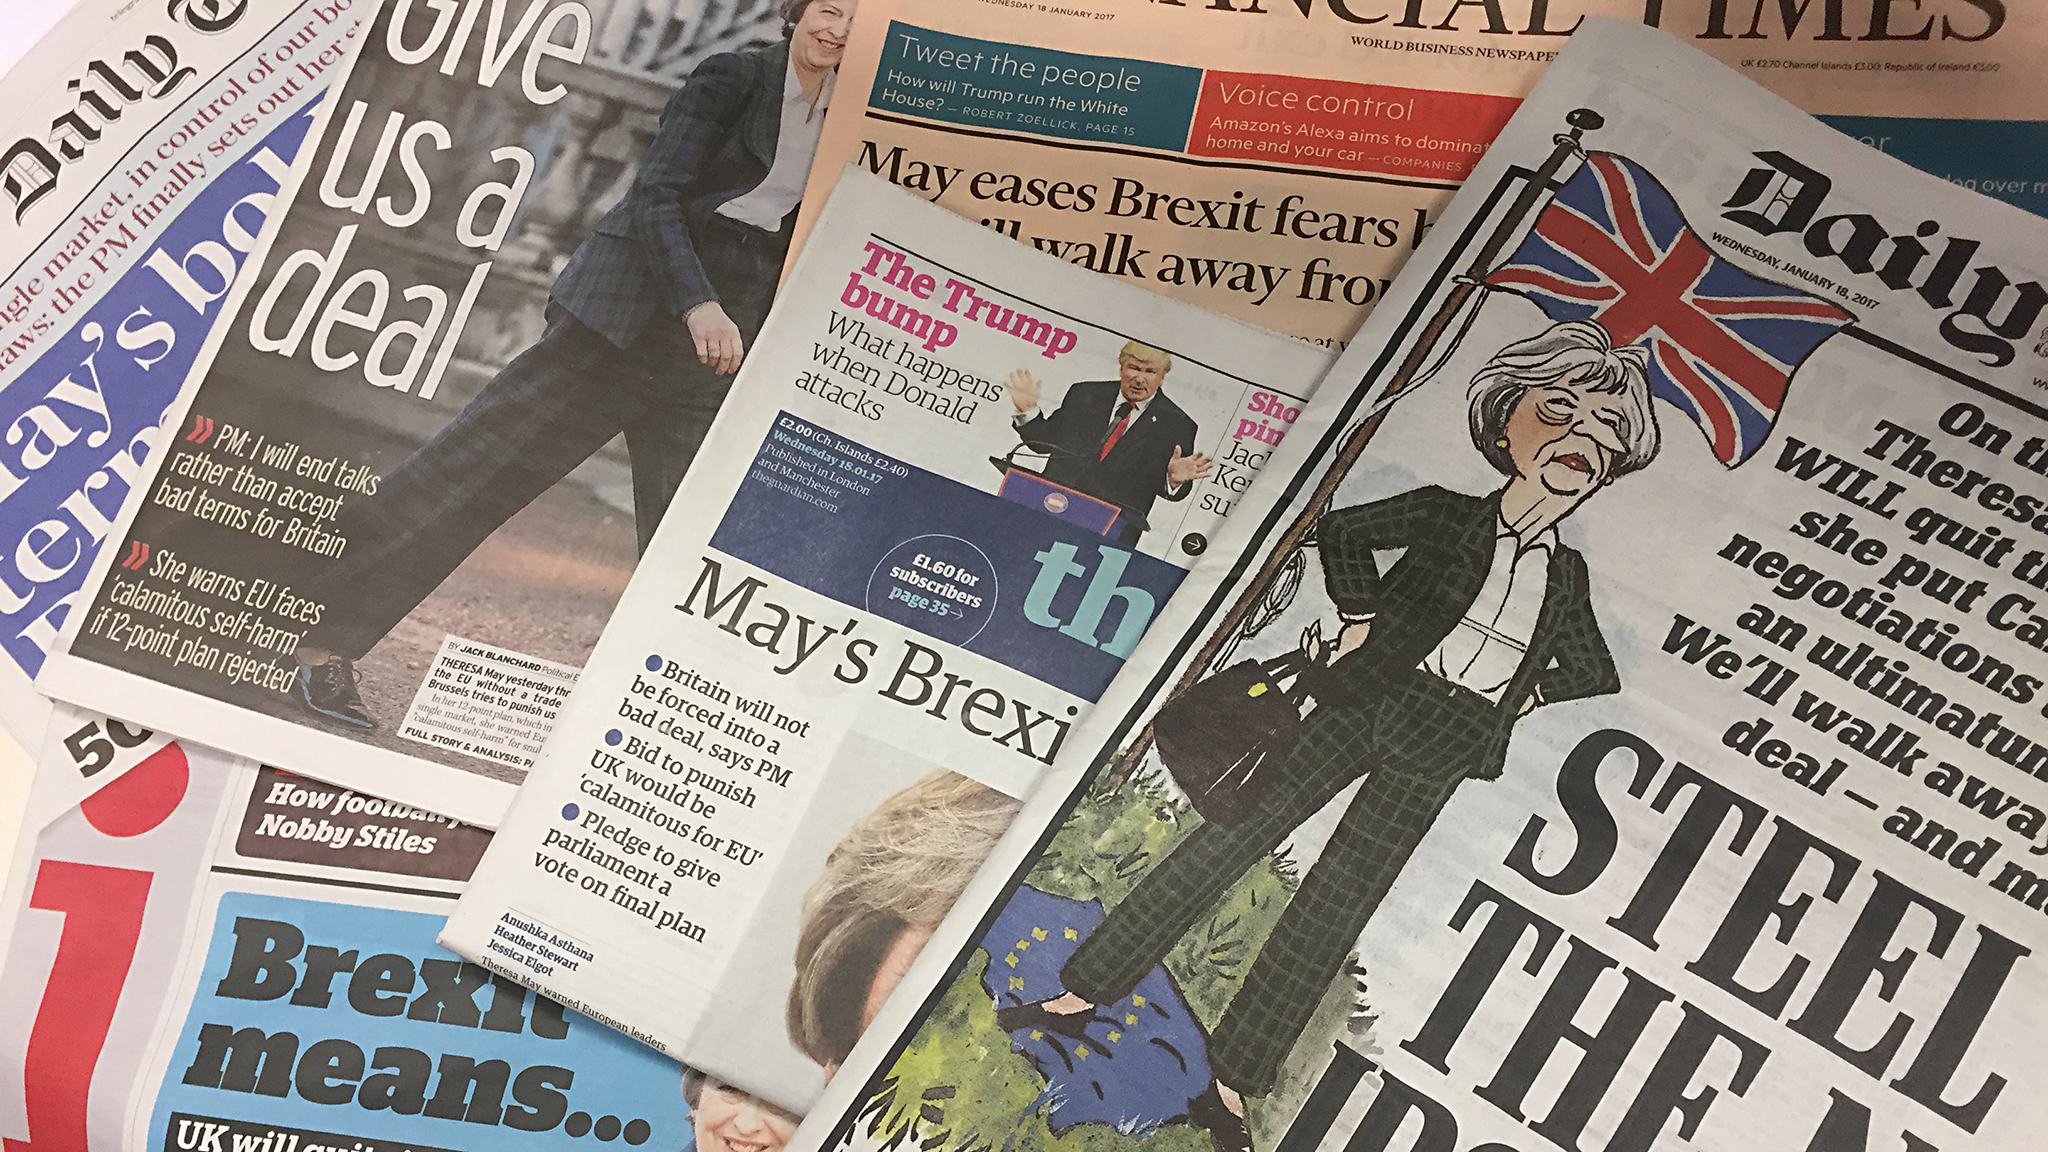 the british press Even though the last major british news office, reuters, left in 2005, the term fleet street continues to be used as a metonym for the british national press the independent was first published on 7 october 1986.